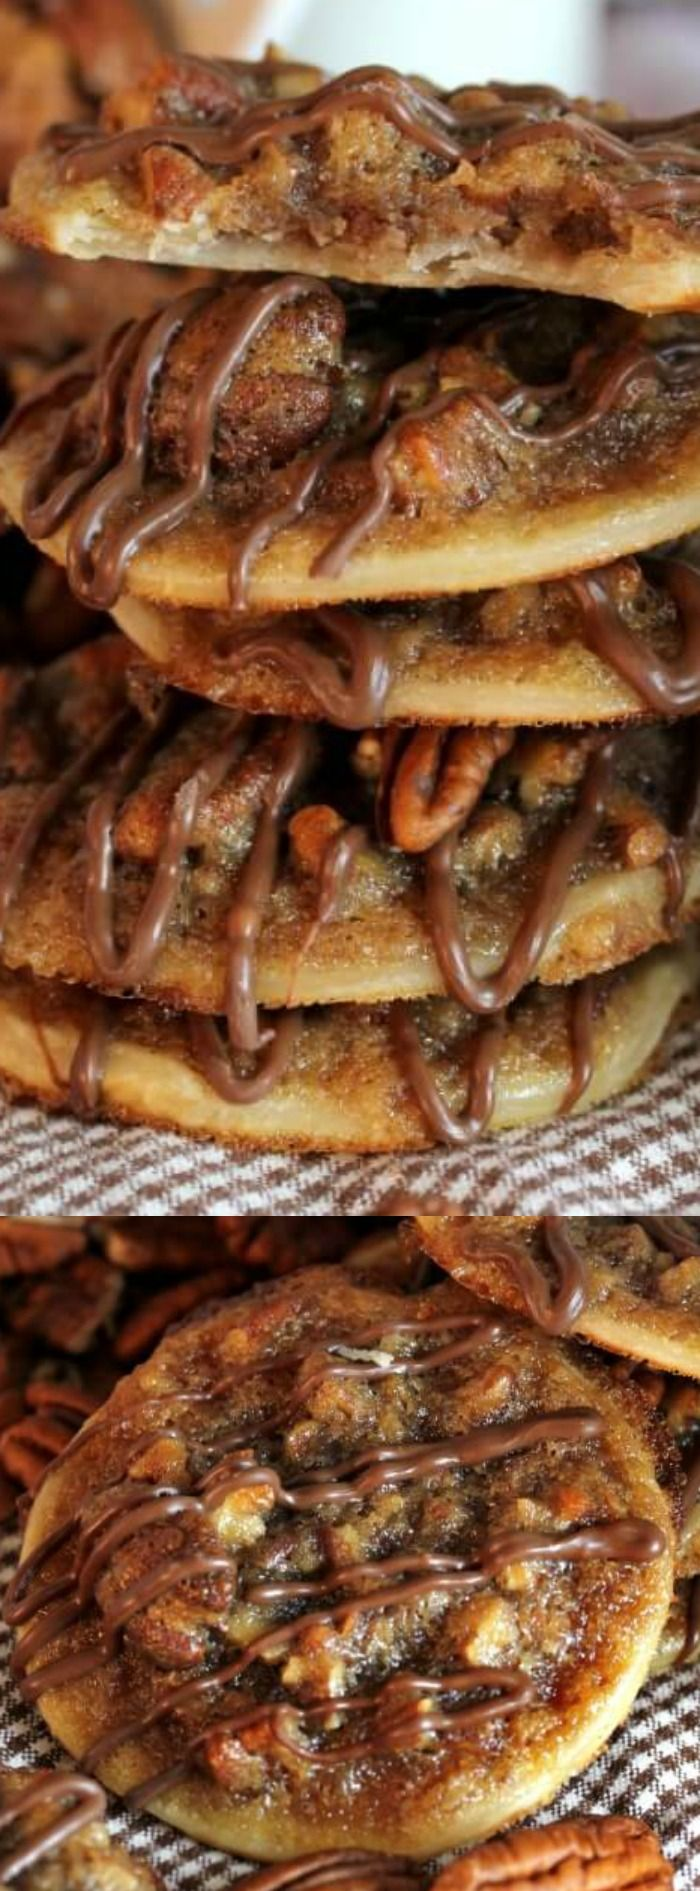 These Pecan Pie Cookies from Spend with Pennies are so yummy and make the perfec…